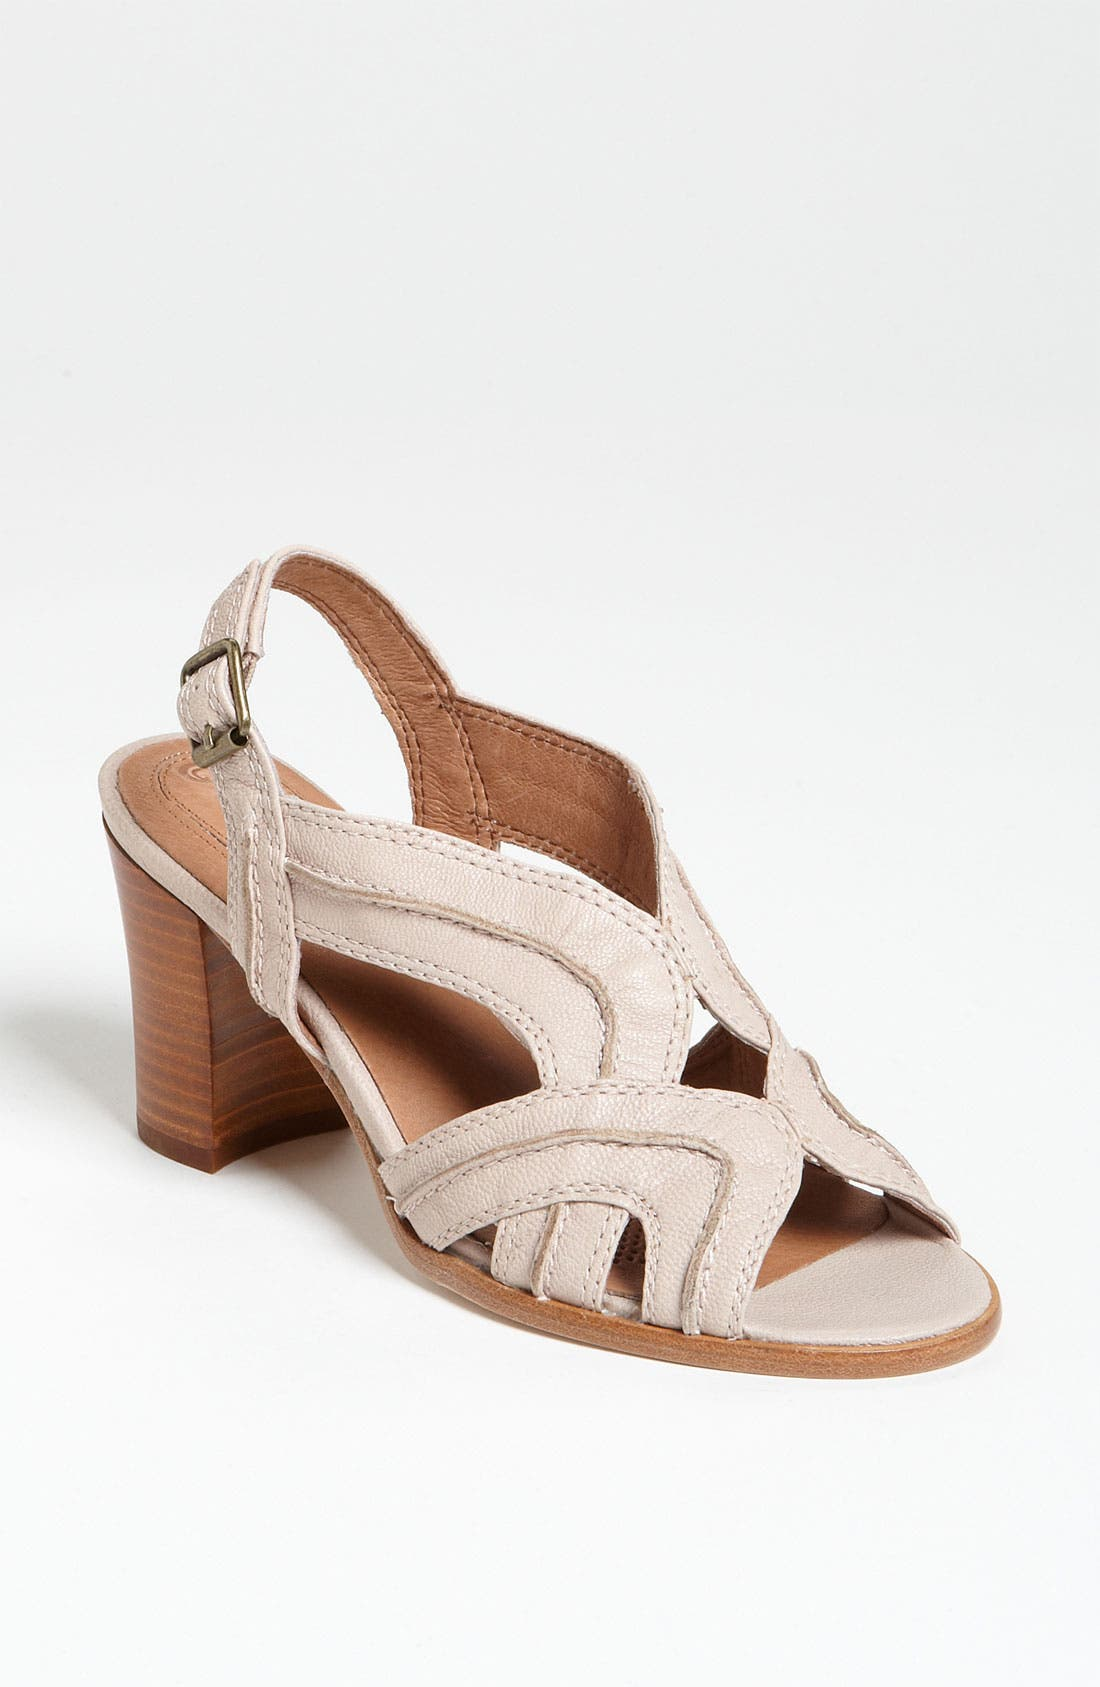 Alternate Image 1 Selected - Corso Como 'Davinci' Sandal